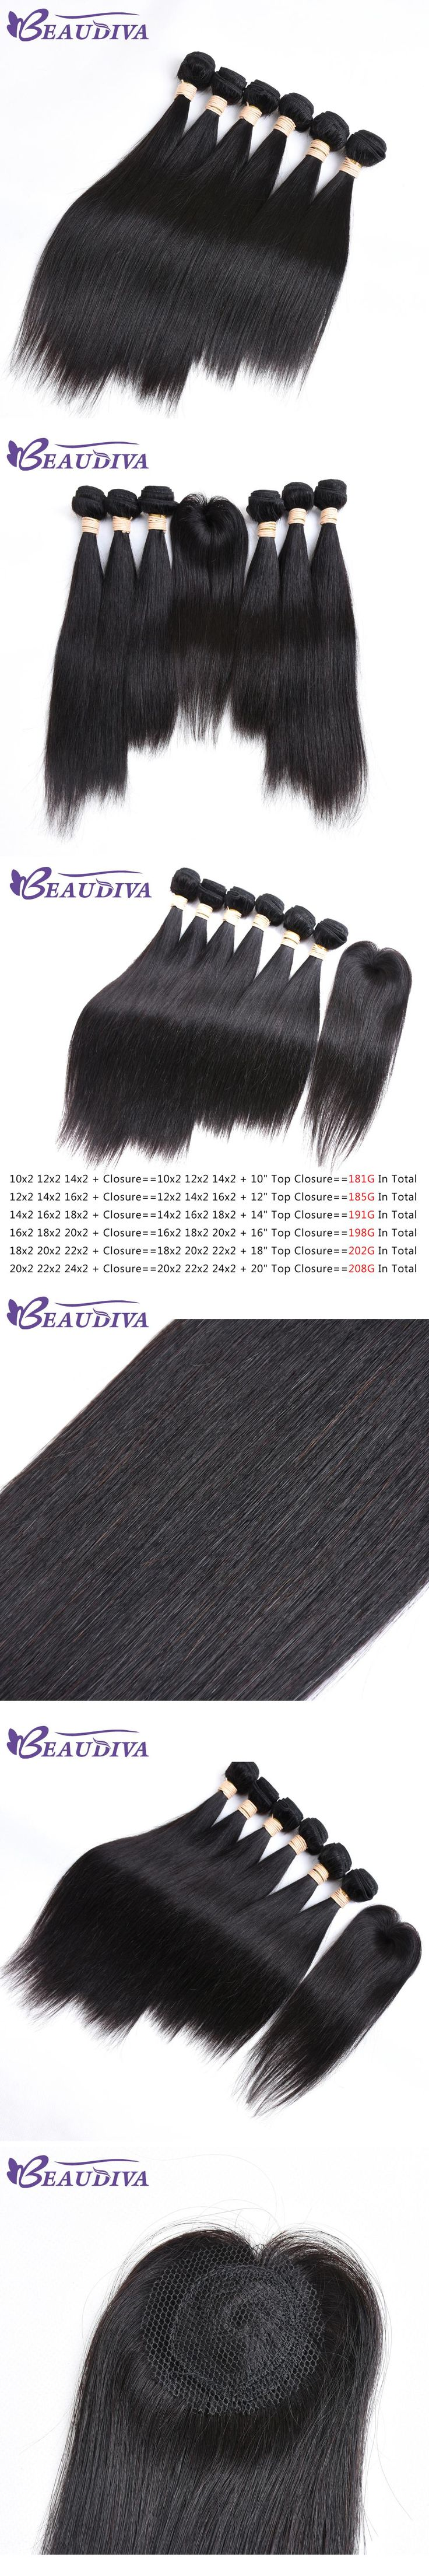 Beaudiva Pre-colored Remy Human Hair Bundles With Closure Malaysian Hair Straight 6 Bundles With Lace Closure Free Shipping